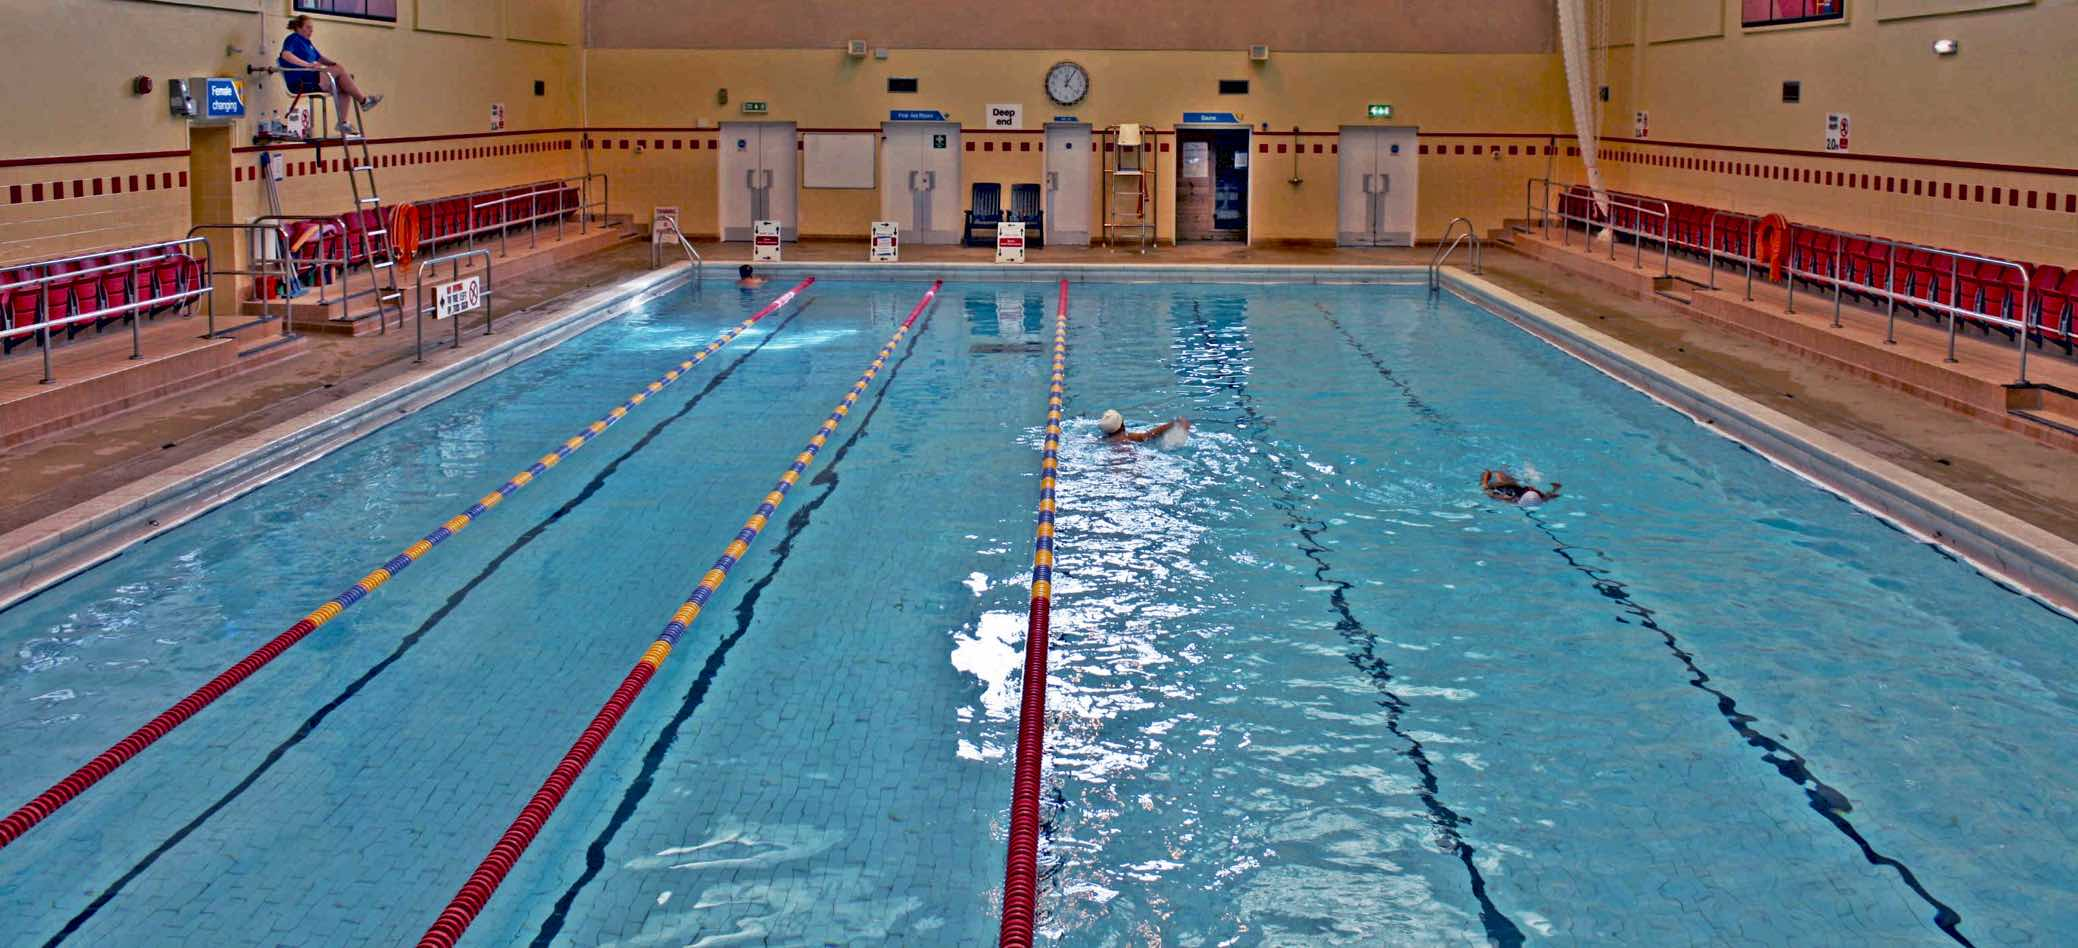 Stokewood bh live active Mountbatten swimming pool portsmouth